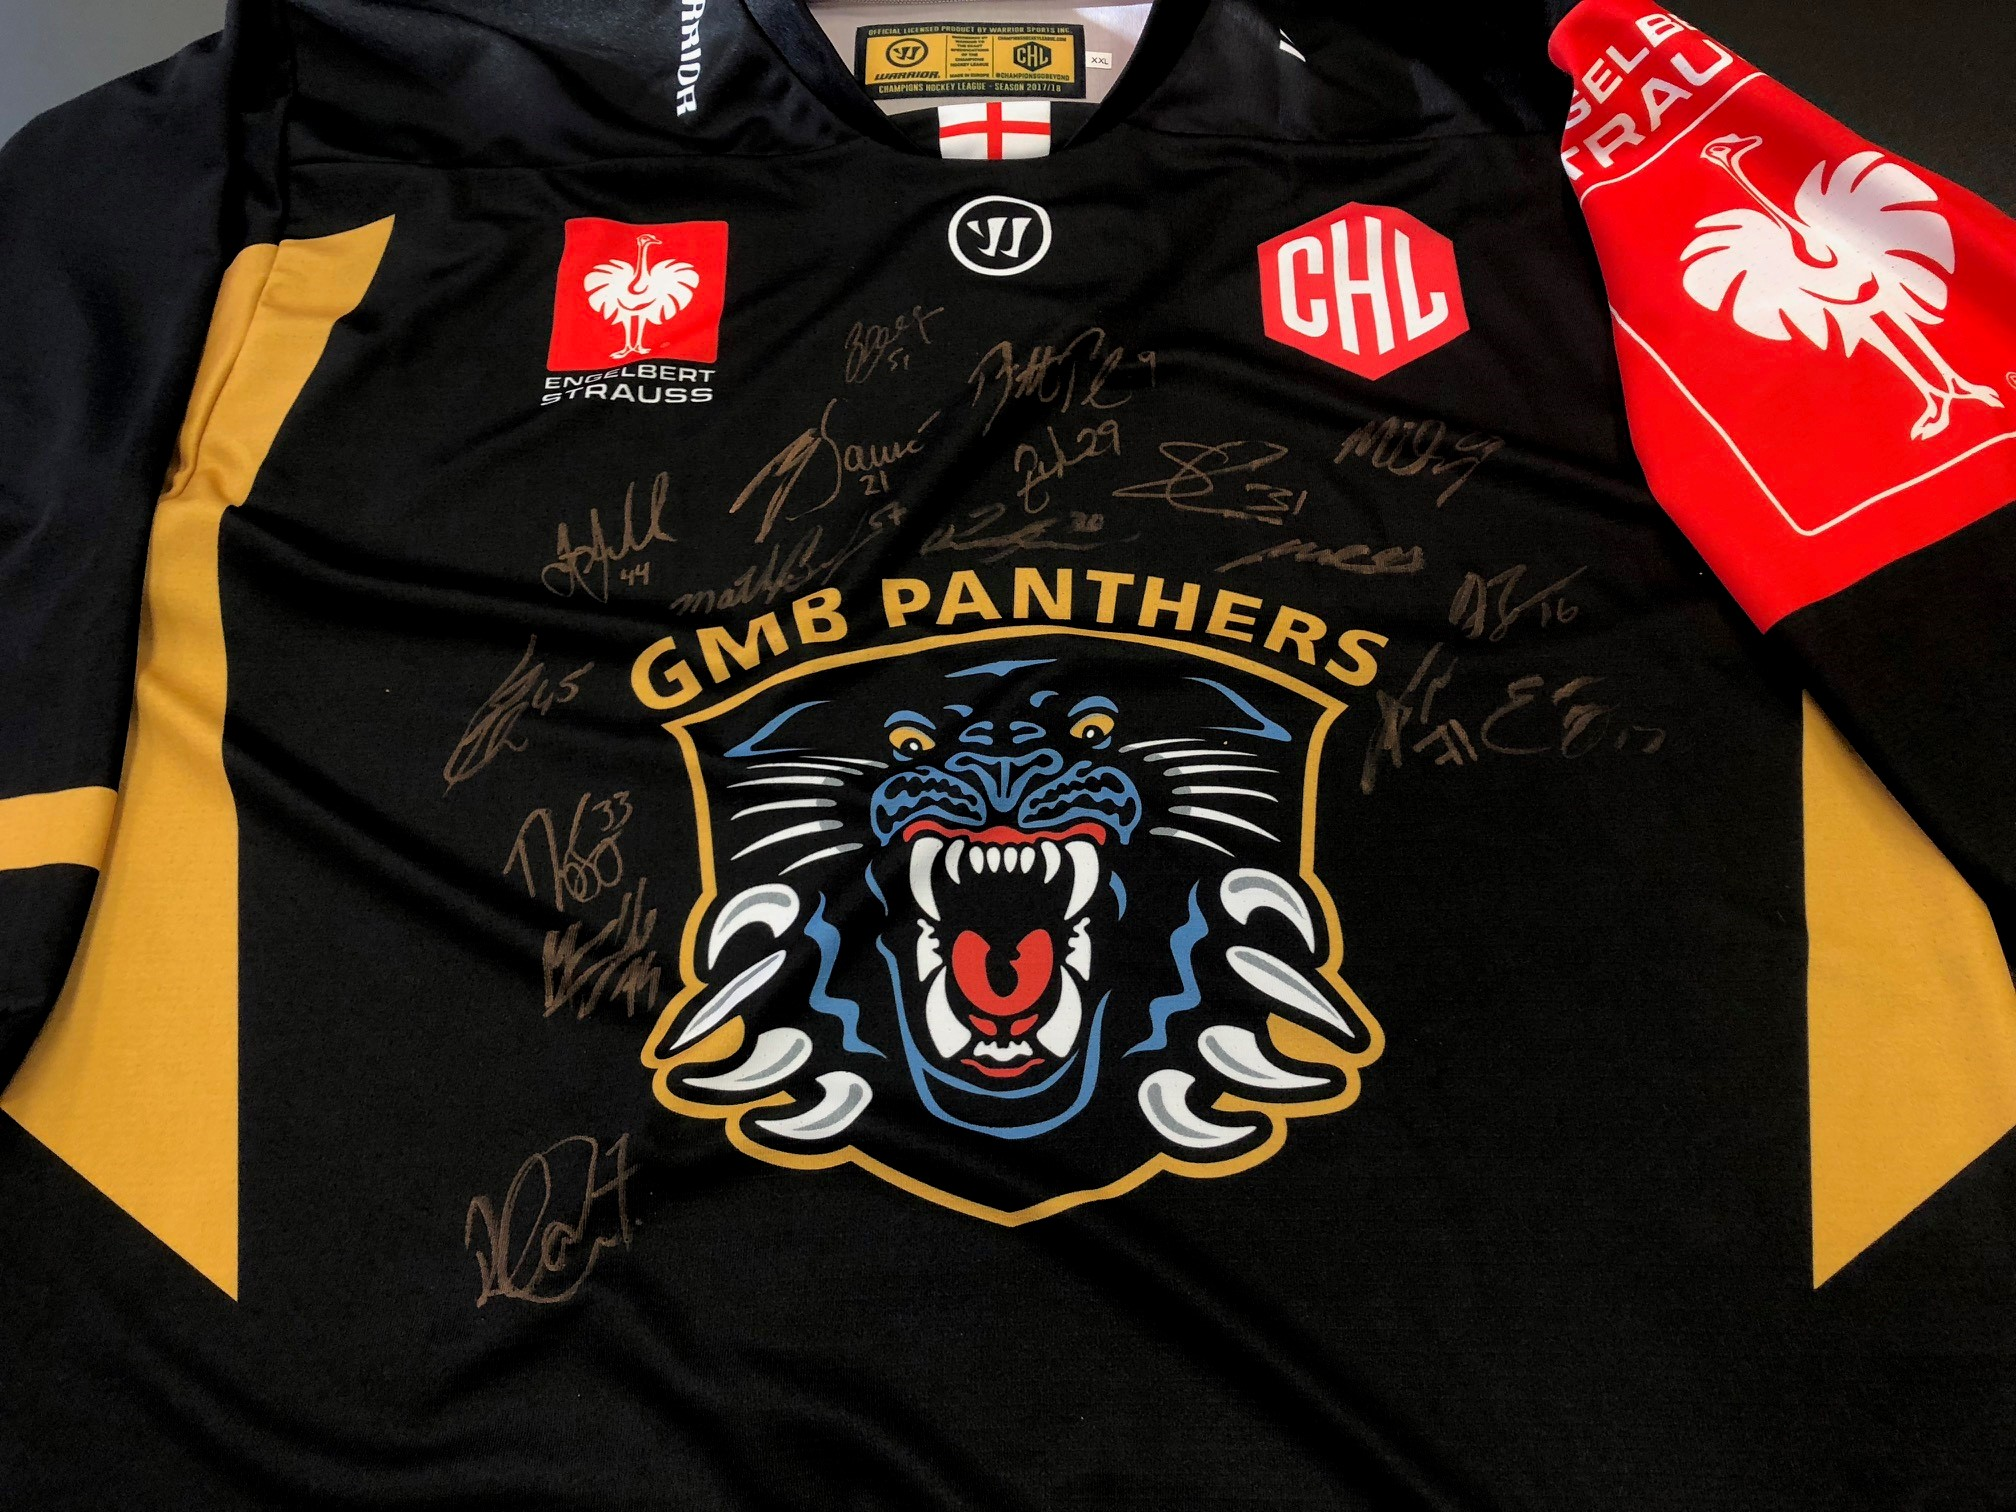 Charity jersey auction ends at £150 Top Image